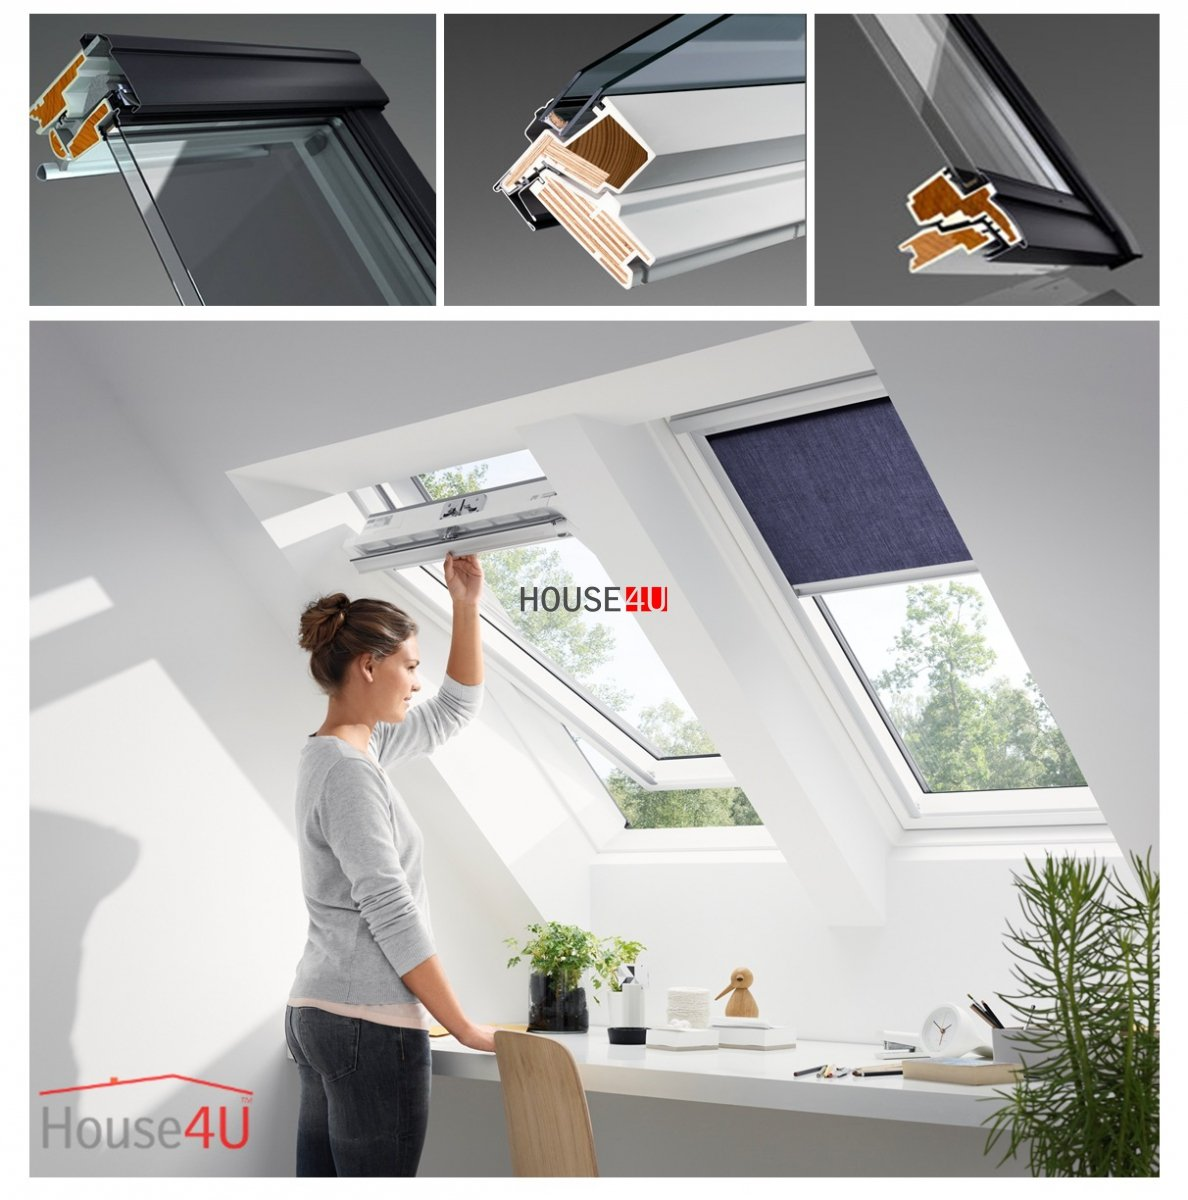 velux dachfenster ggu 0068 kunststoff schwingfenster 3. Black Bedroom Furniture Sets. Home Design Ideas